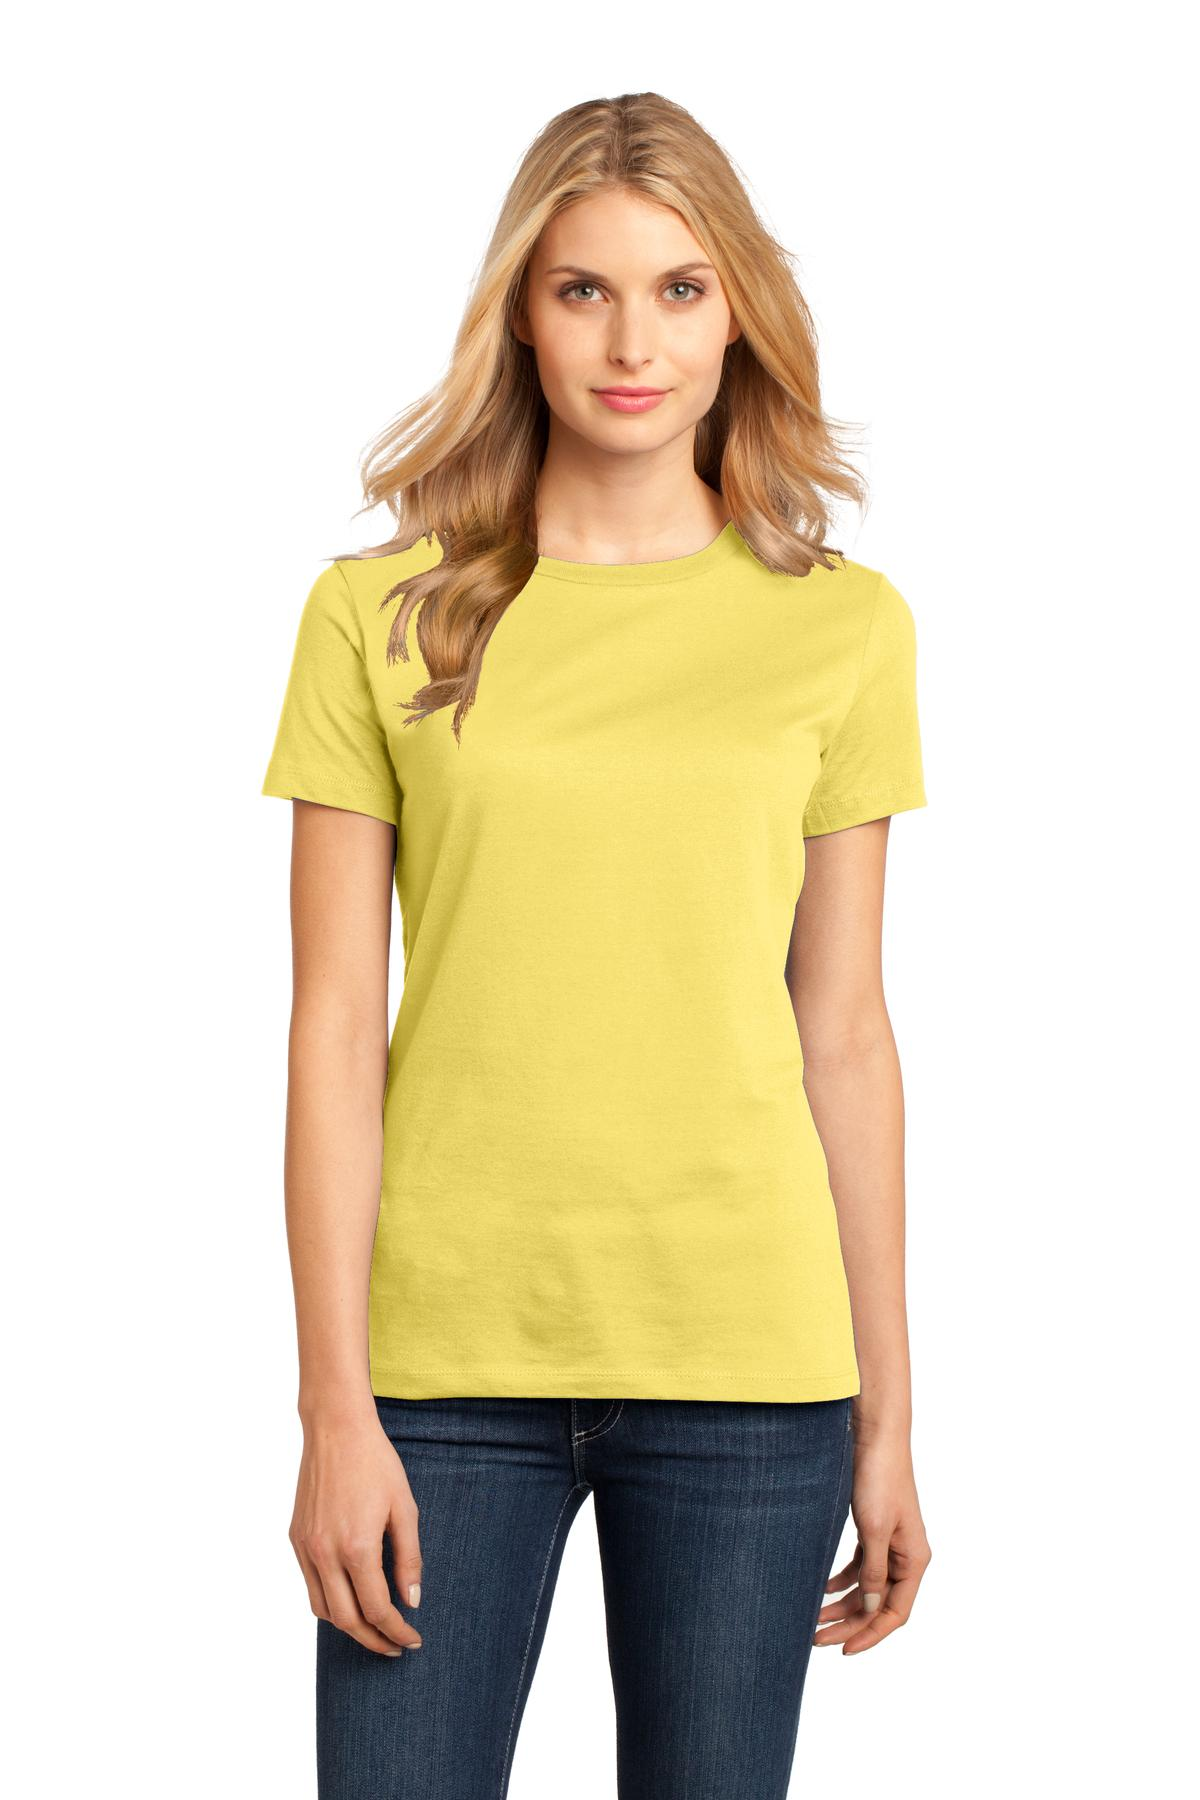 District ®  Women's Perfect Weight ® Tee. DM104L - Yellow